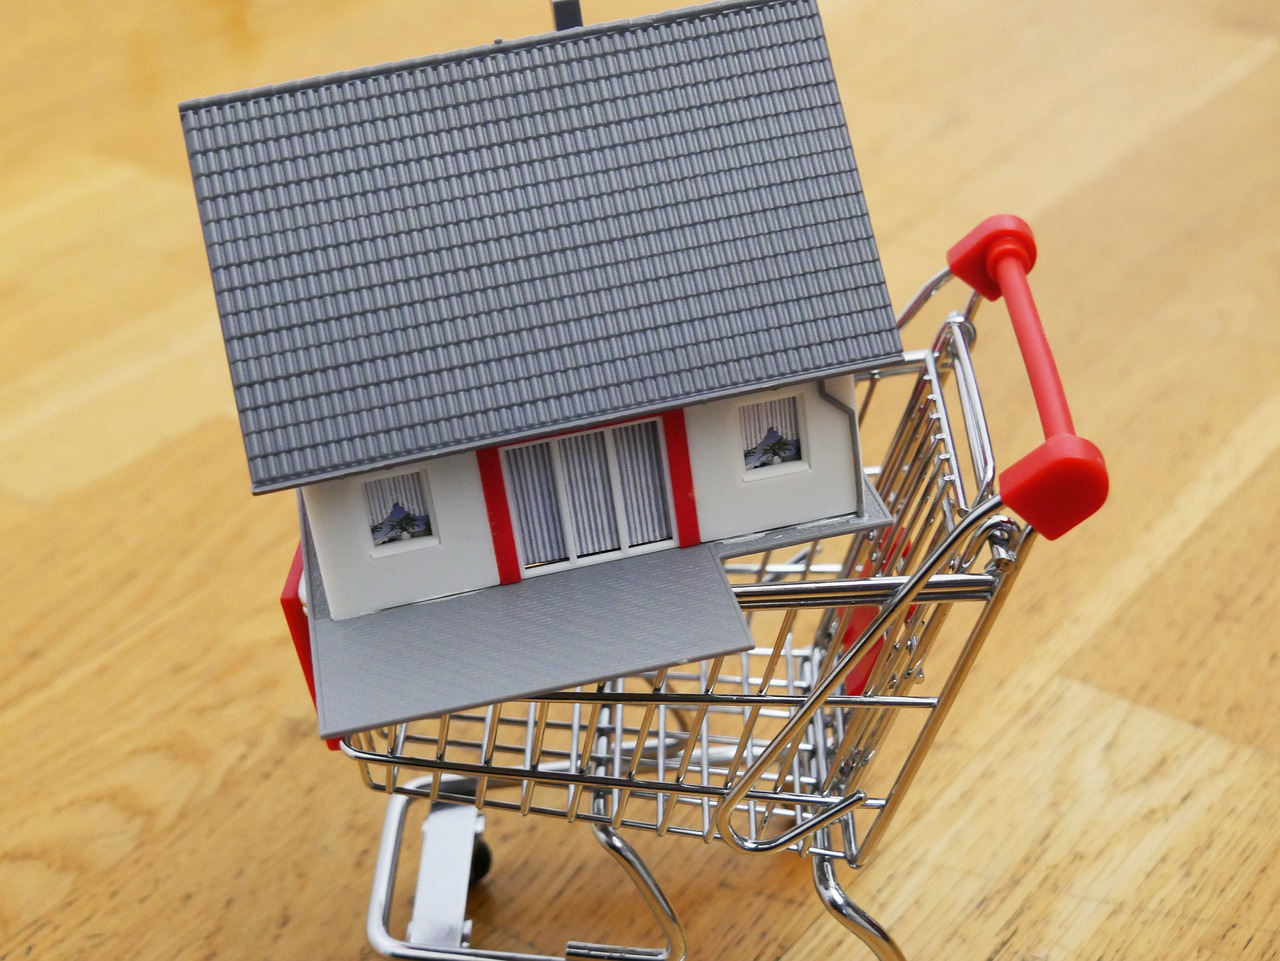 image - What Are the Most Important Factors When Buying a House